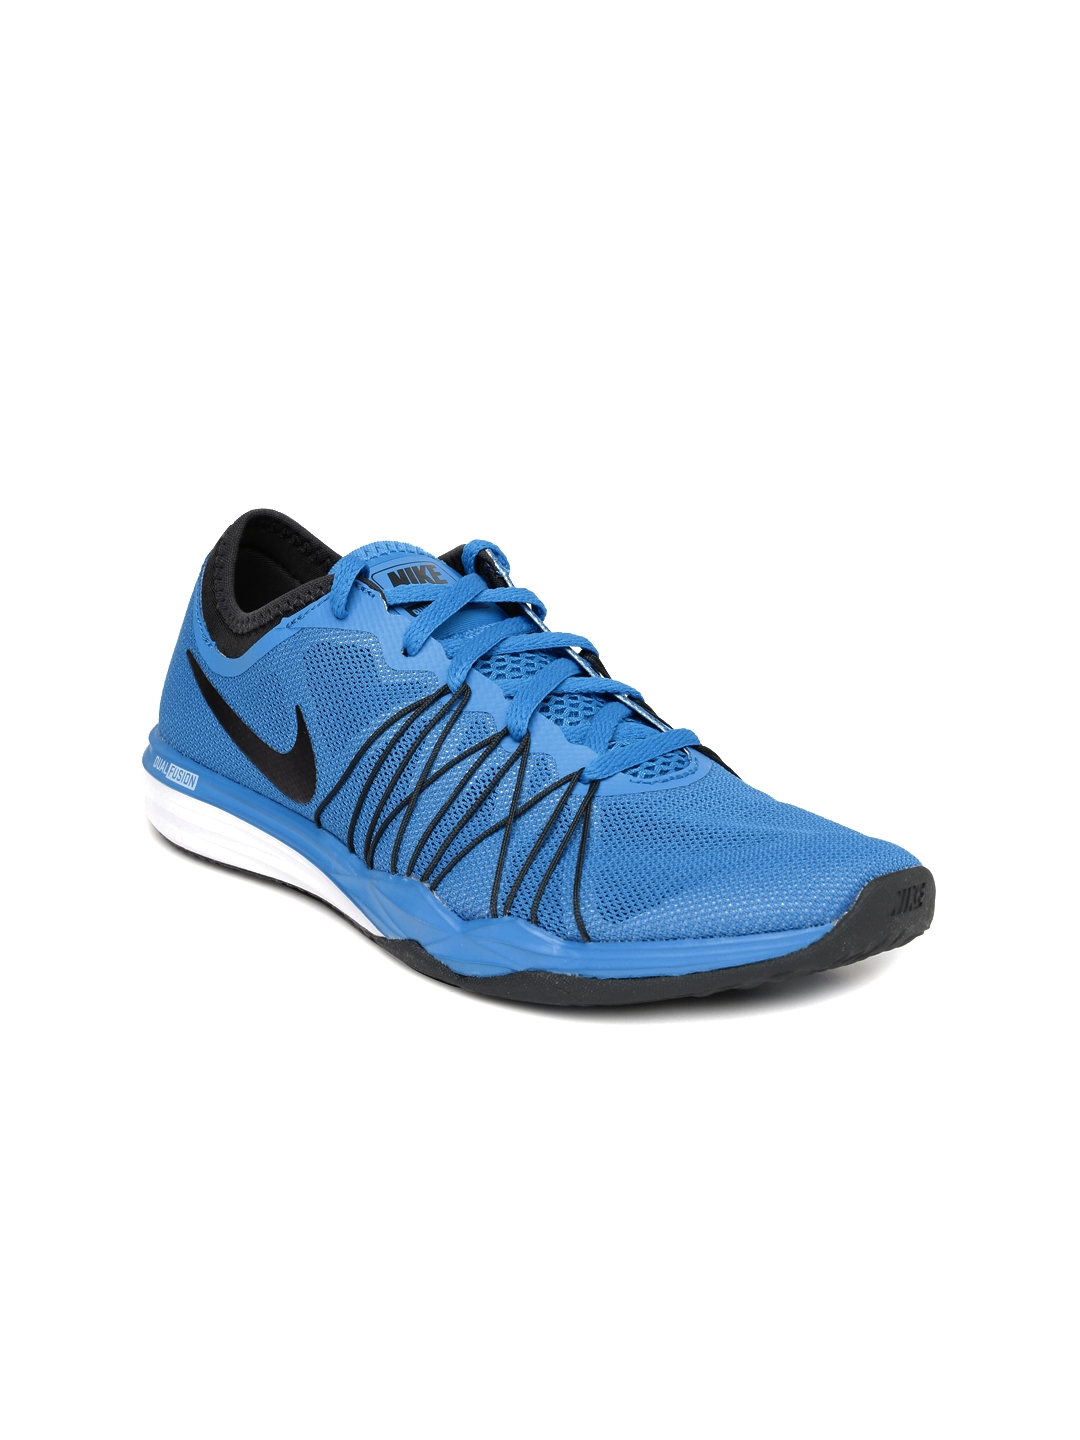 best website fb0be f98e4 Nike Women Blue Dual Fusion TR Hit Training Shoes